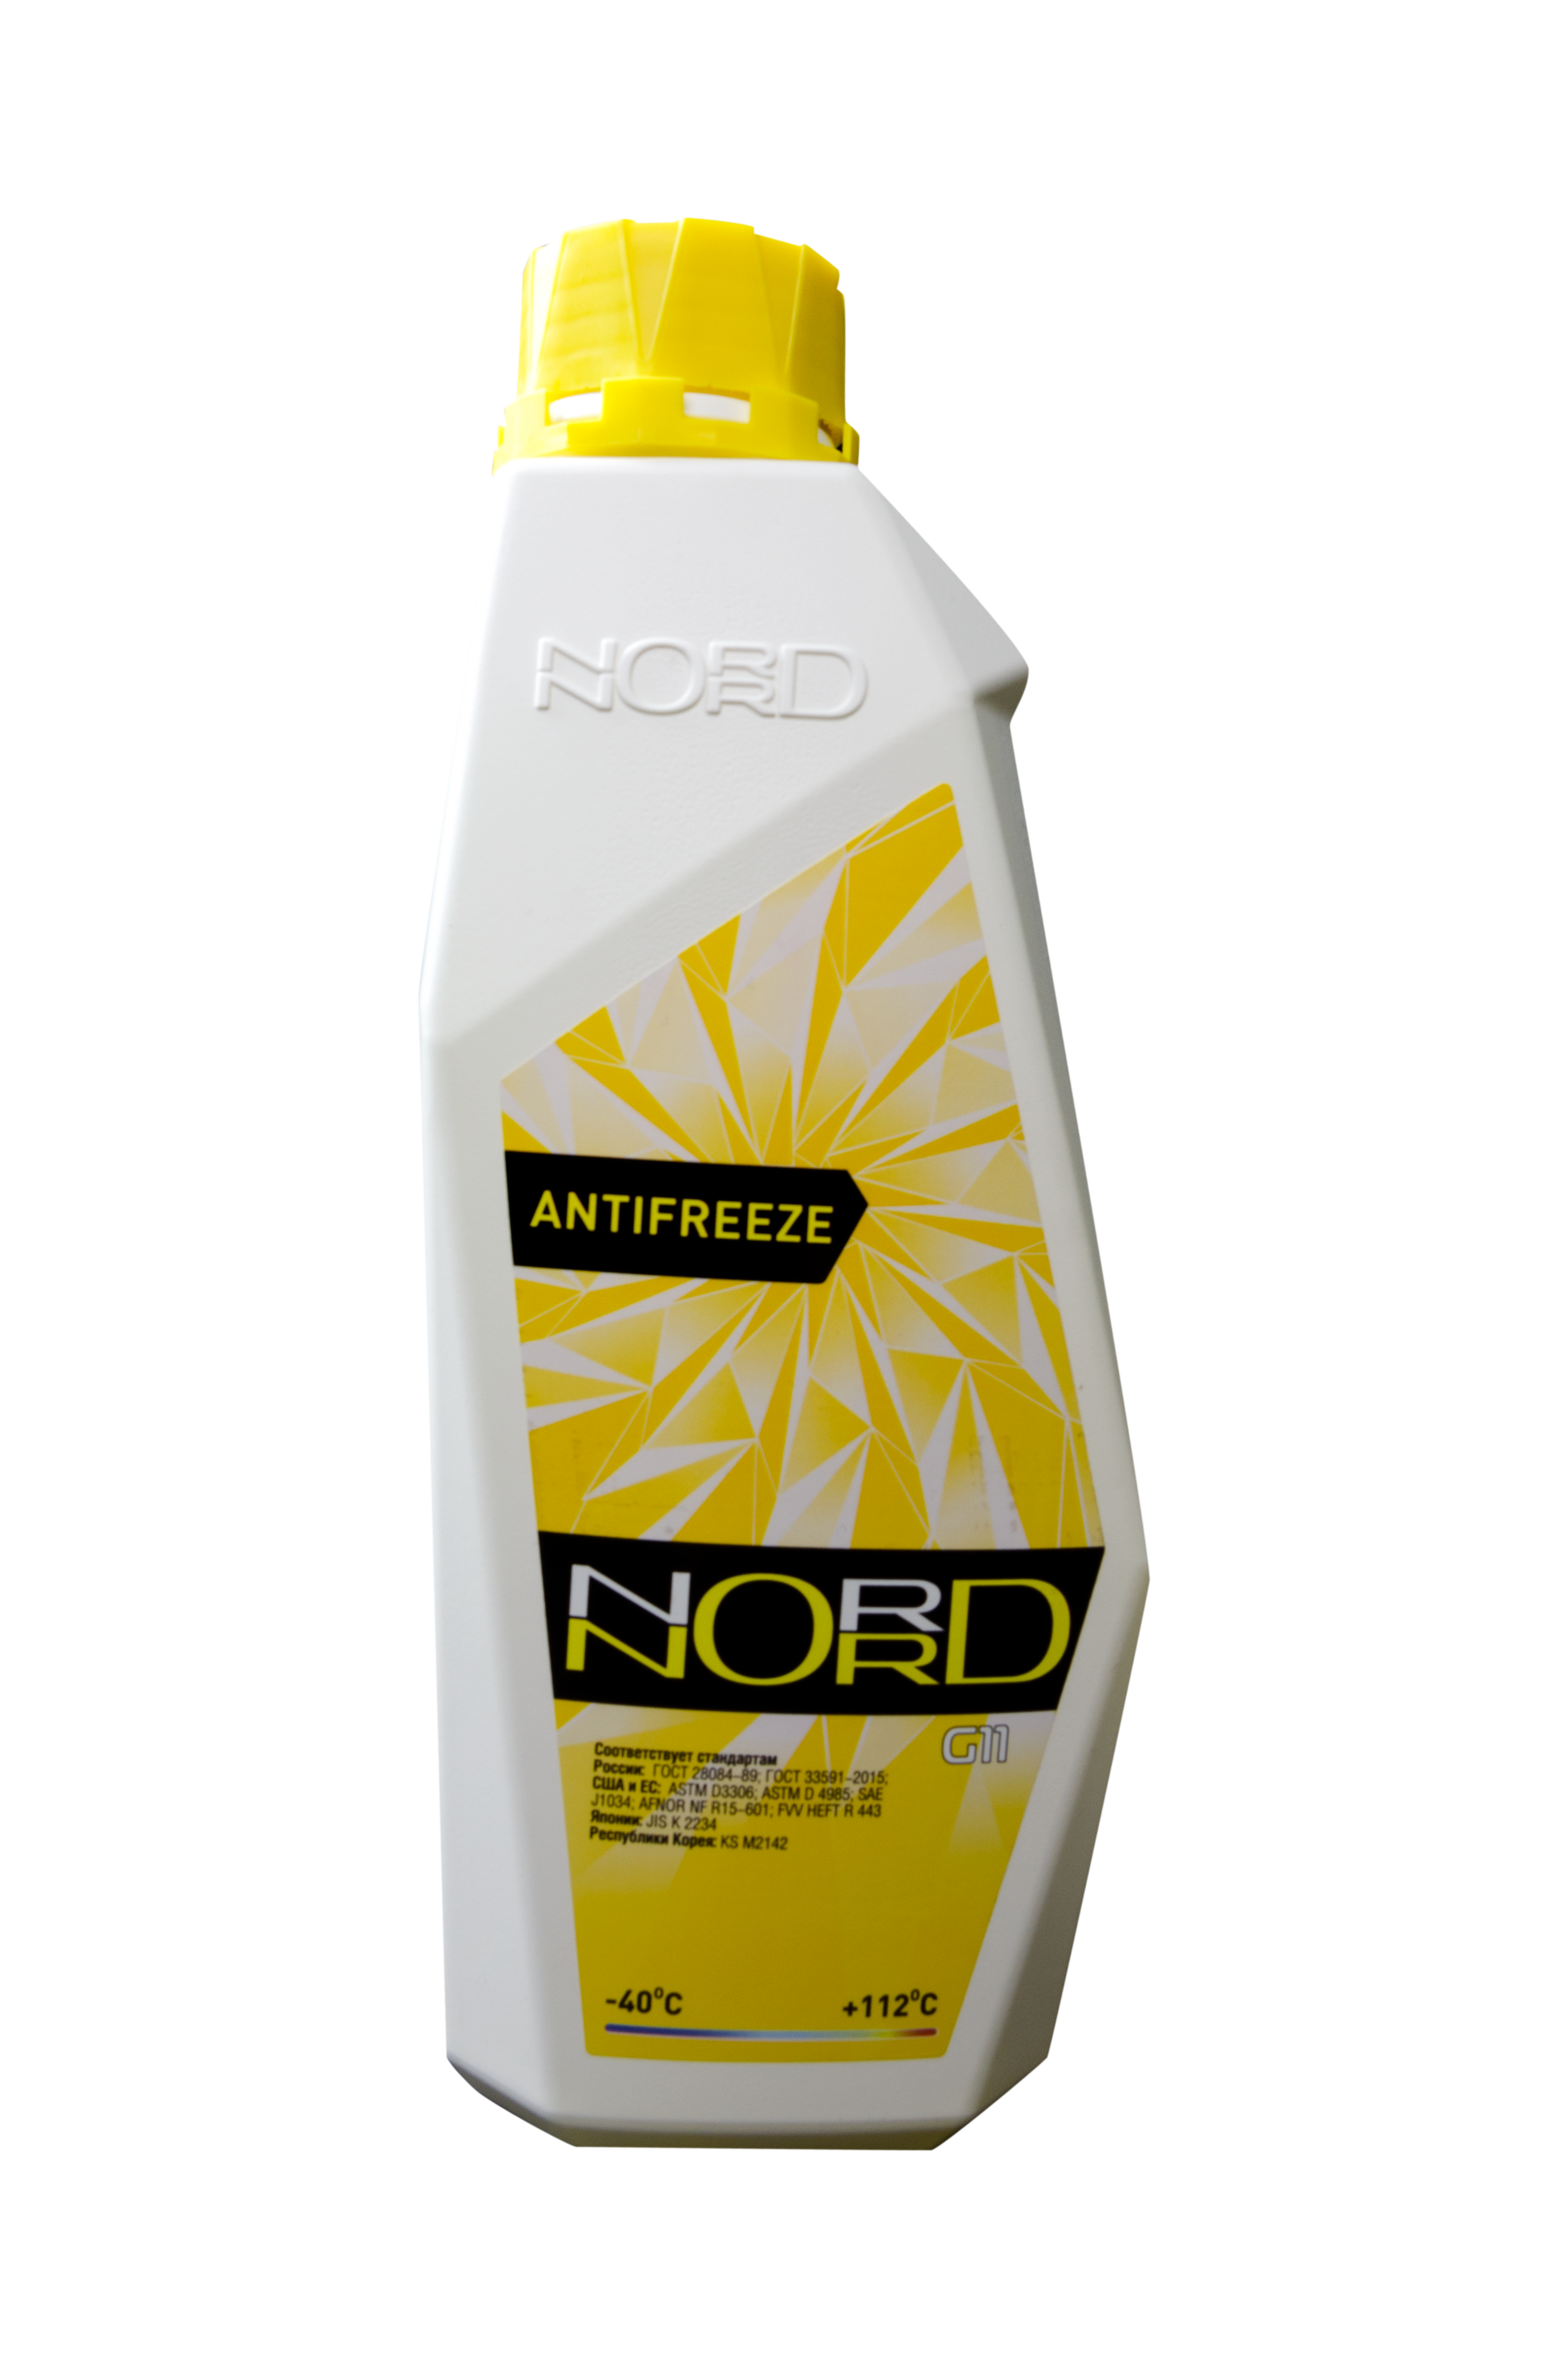 nord NY20409 Антифриз NORD High Quality Antifreeze готовый -40C желтый 1 кг